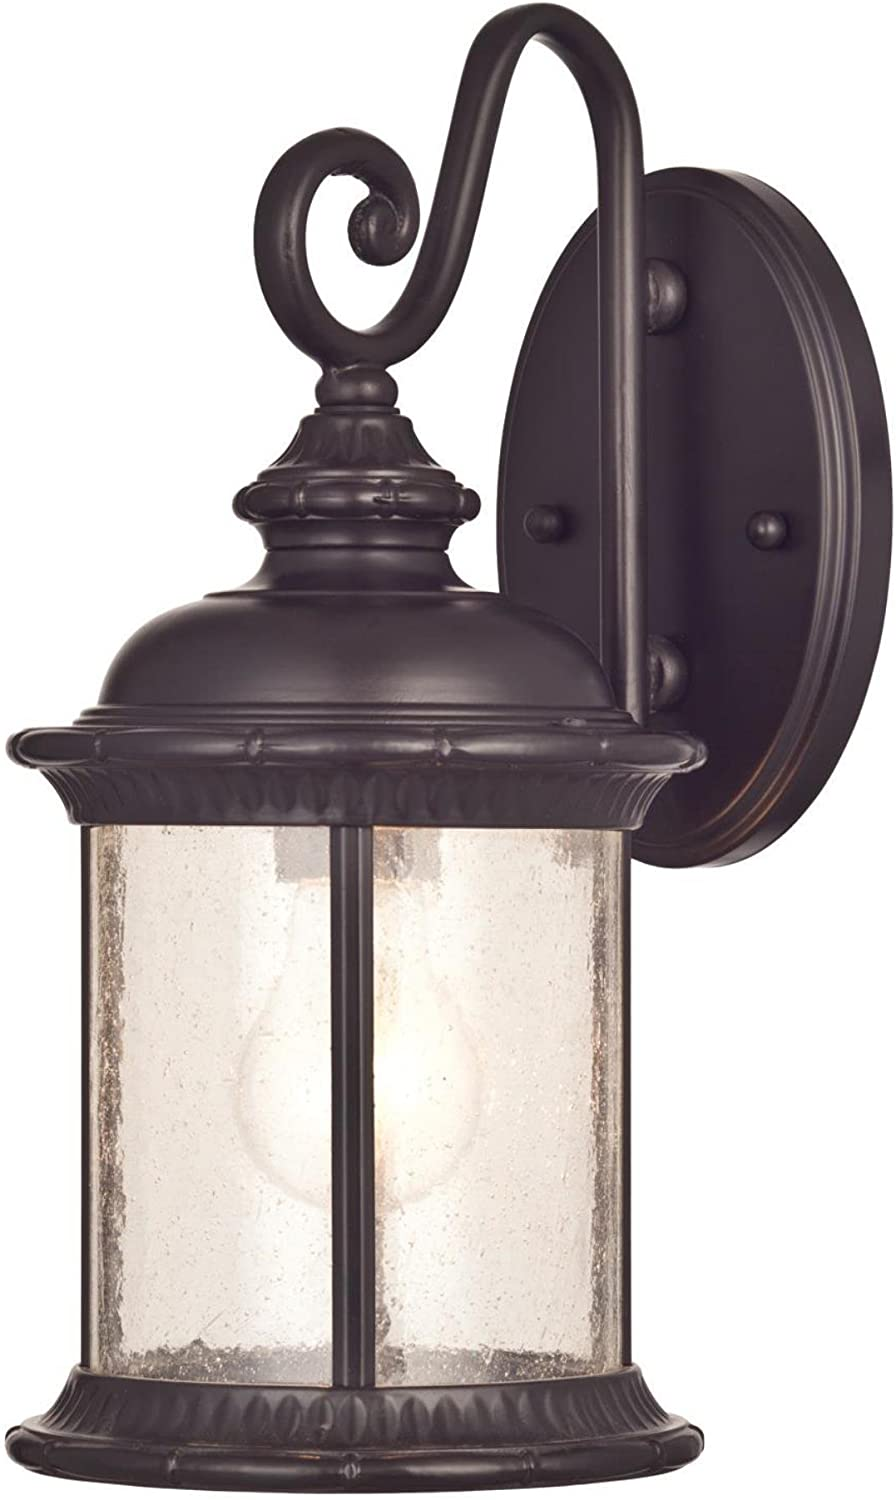 Westinghouse Lighting 6230600 New Haven One Light Exterior Wall Lantern On Steel With Clear Seeded Glass Oil Rubbed Bronze Finish Wall Porch Lights Amazon Com